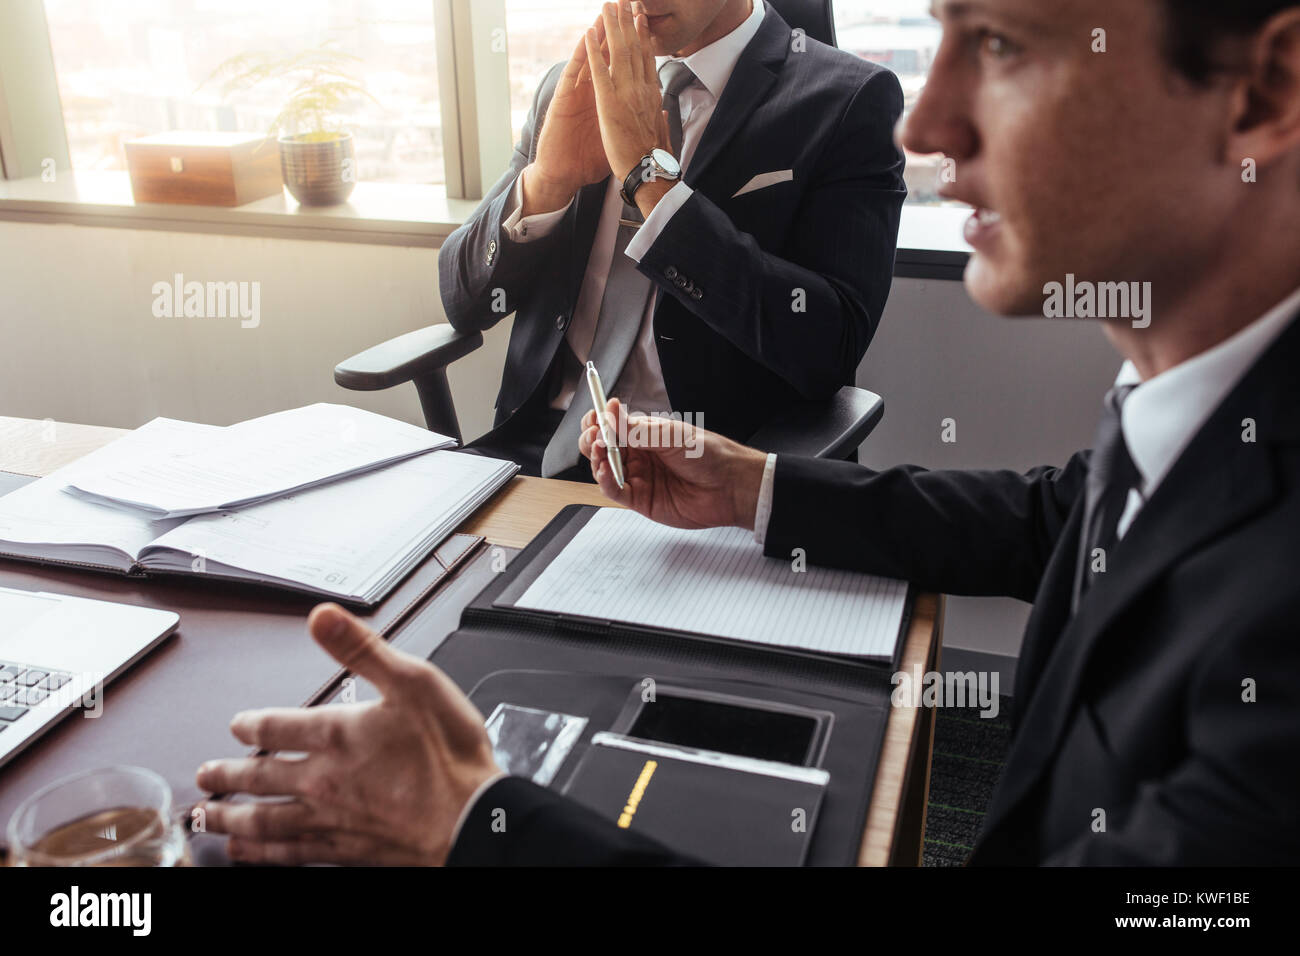 Businessman talking with someone during meeting in office. Two corporate professionals having a meeting together. - Stock Image